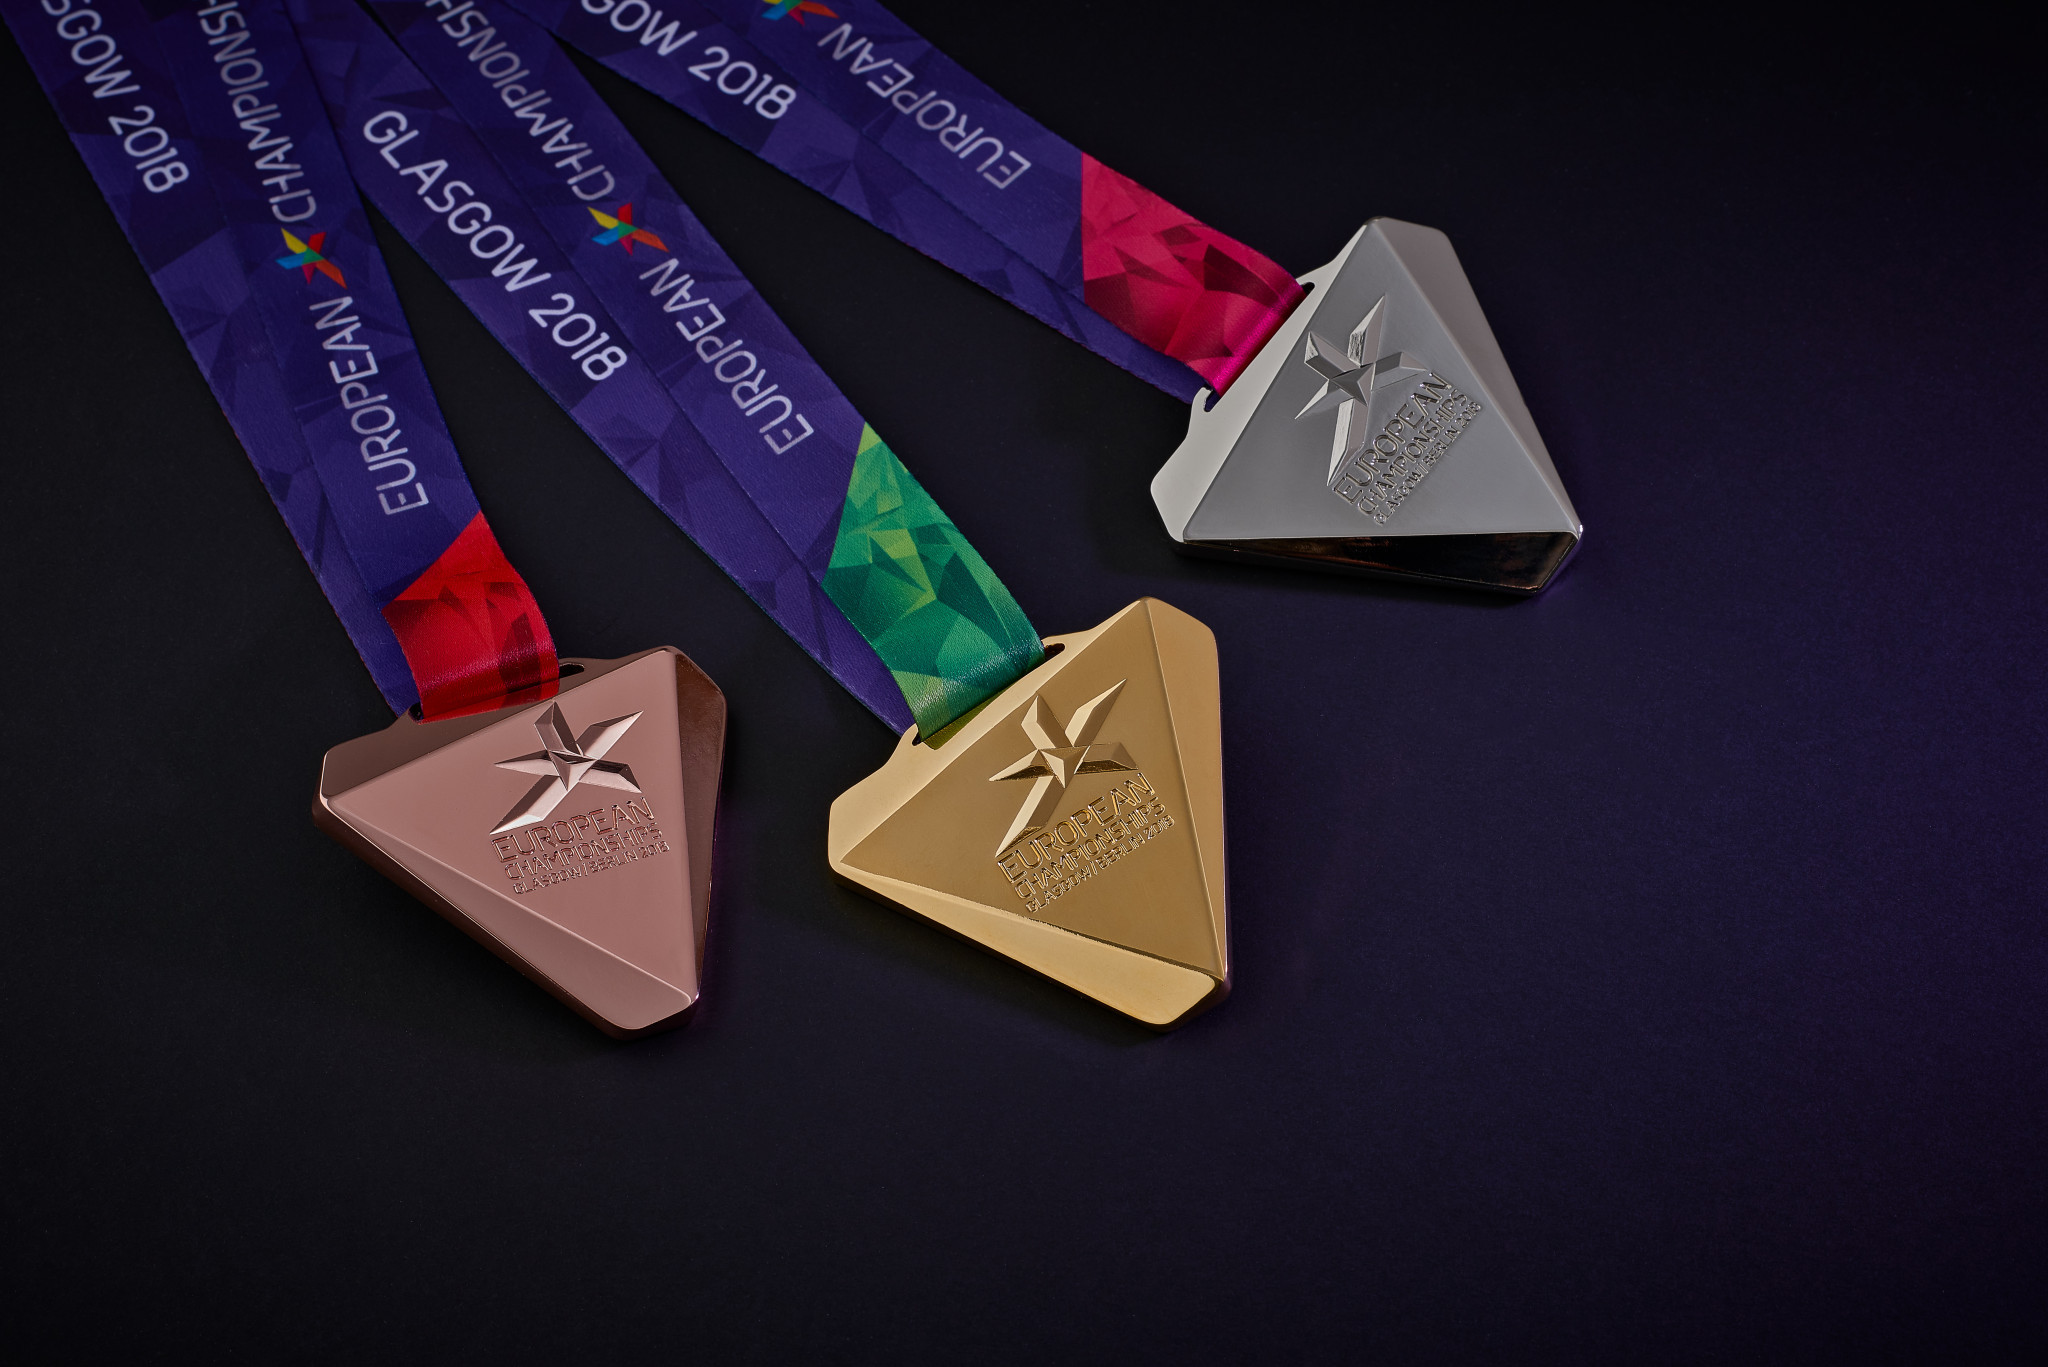 The medals design has been revealed to mark 50 days until the start of Glasgow 2018 ©Glasgow 2018